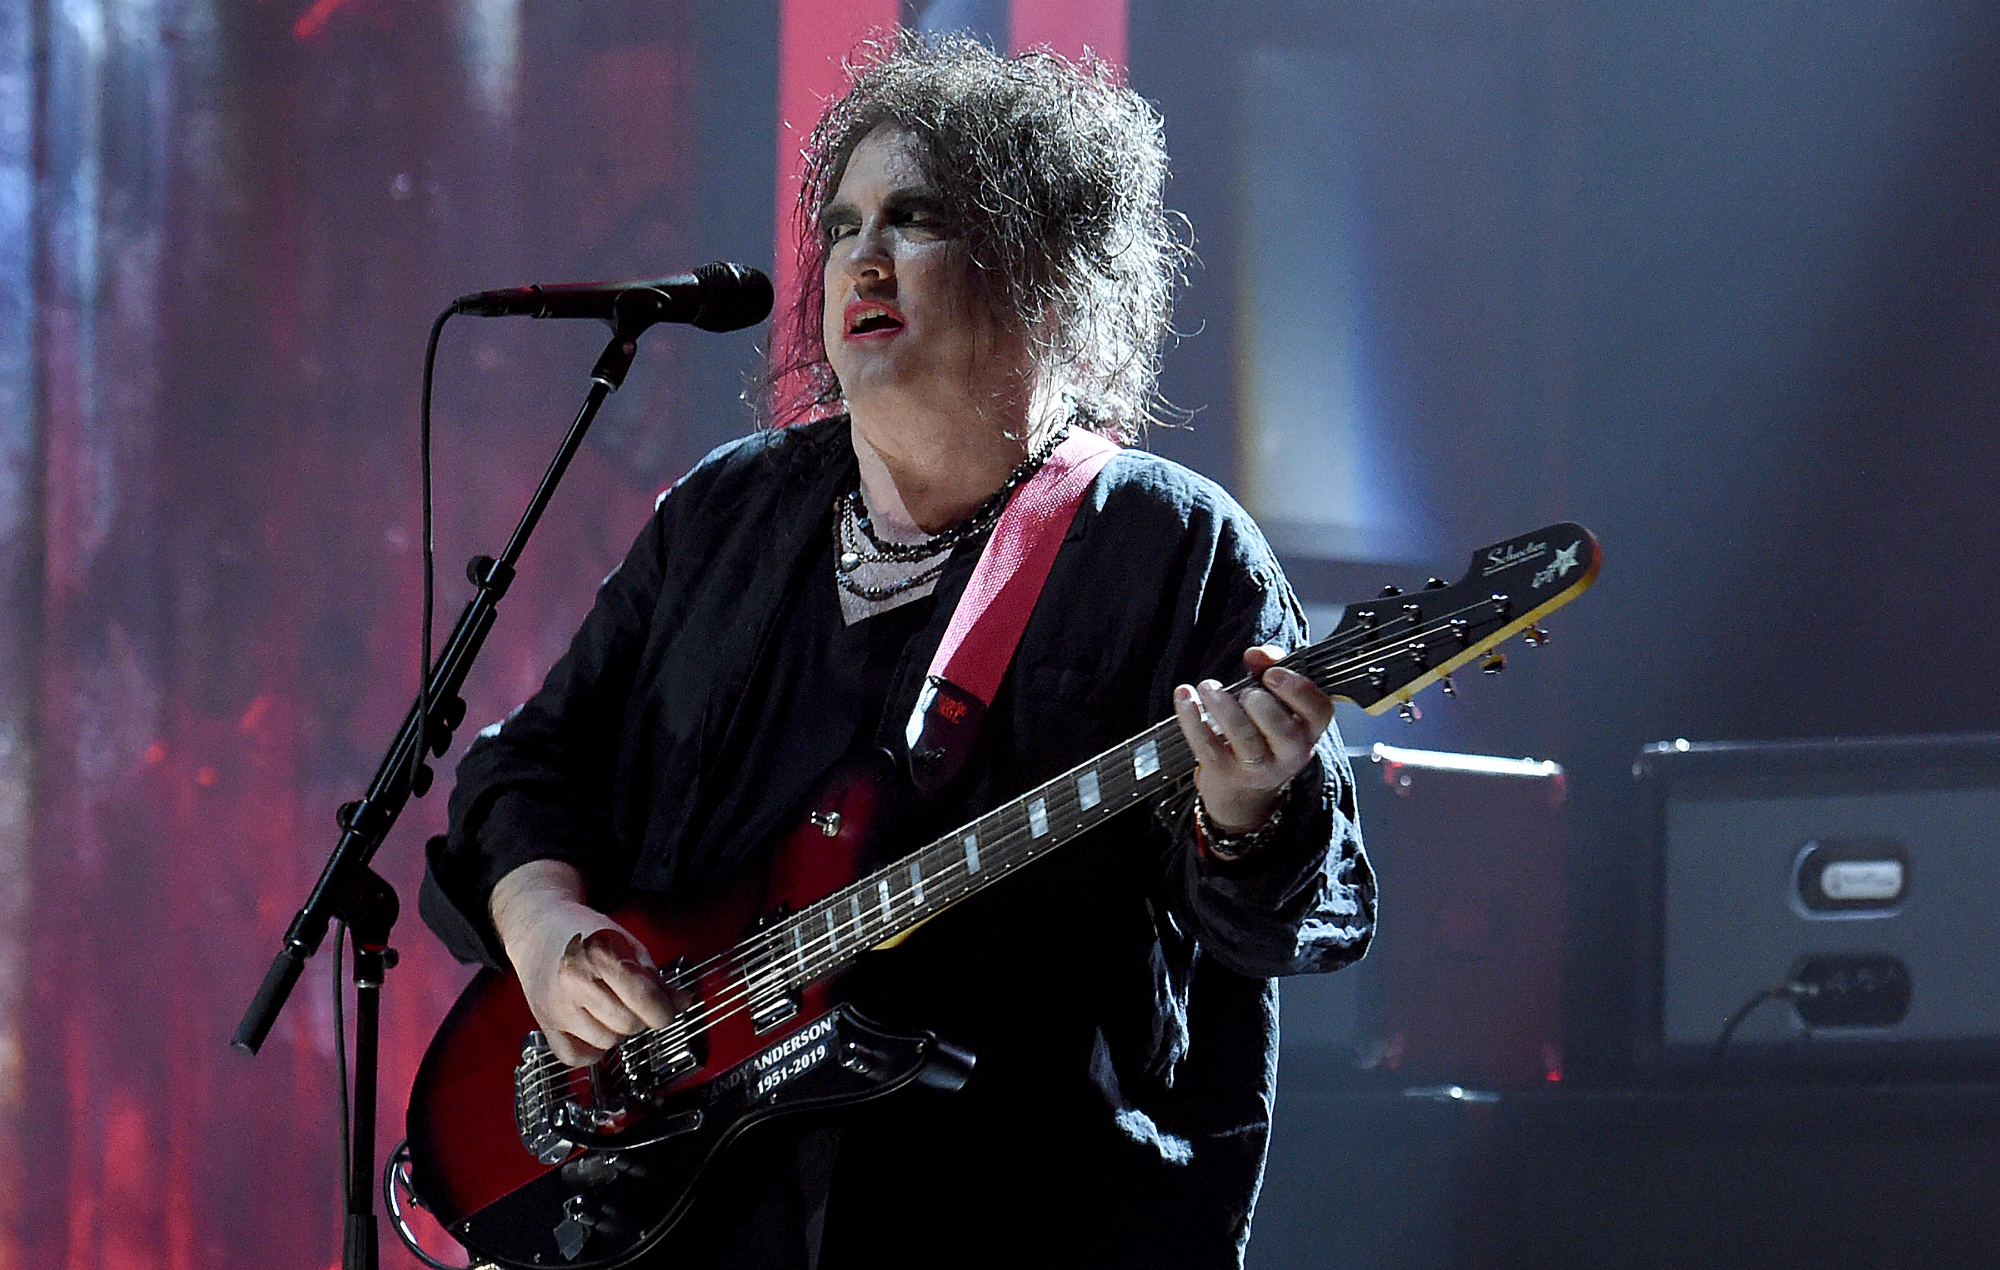 The Cure's Robert Smith goes viral with brilliantly-blunt and on-brand interview response - watch | NME